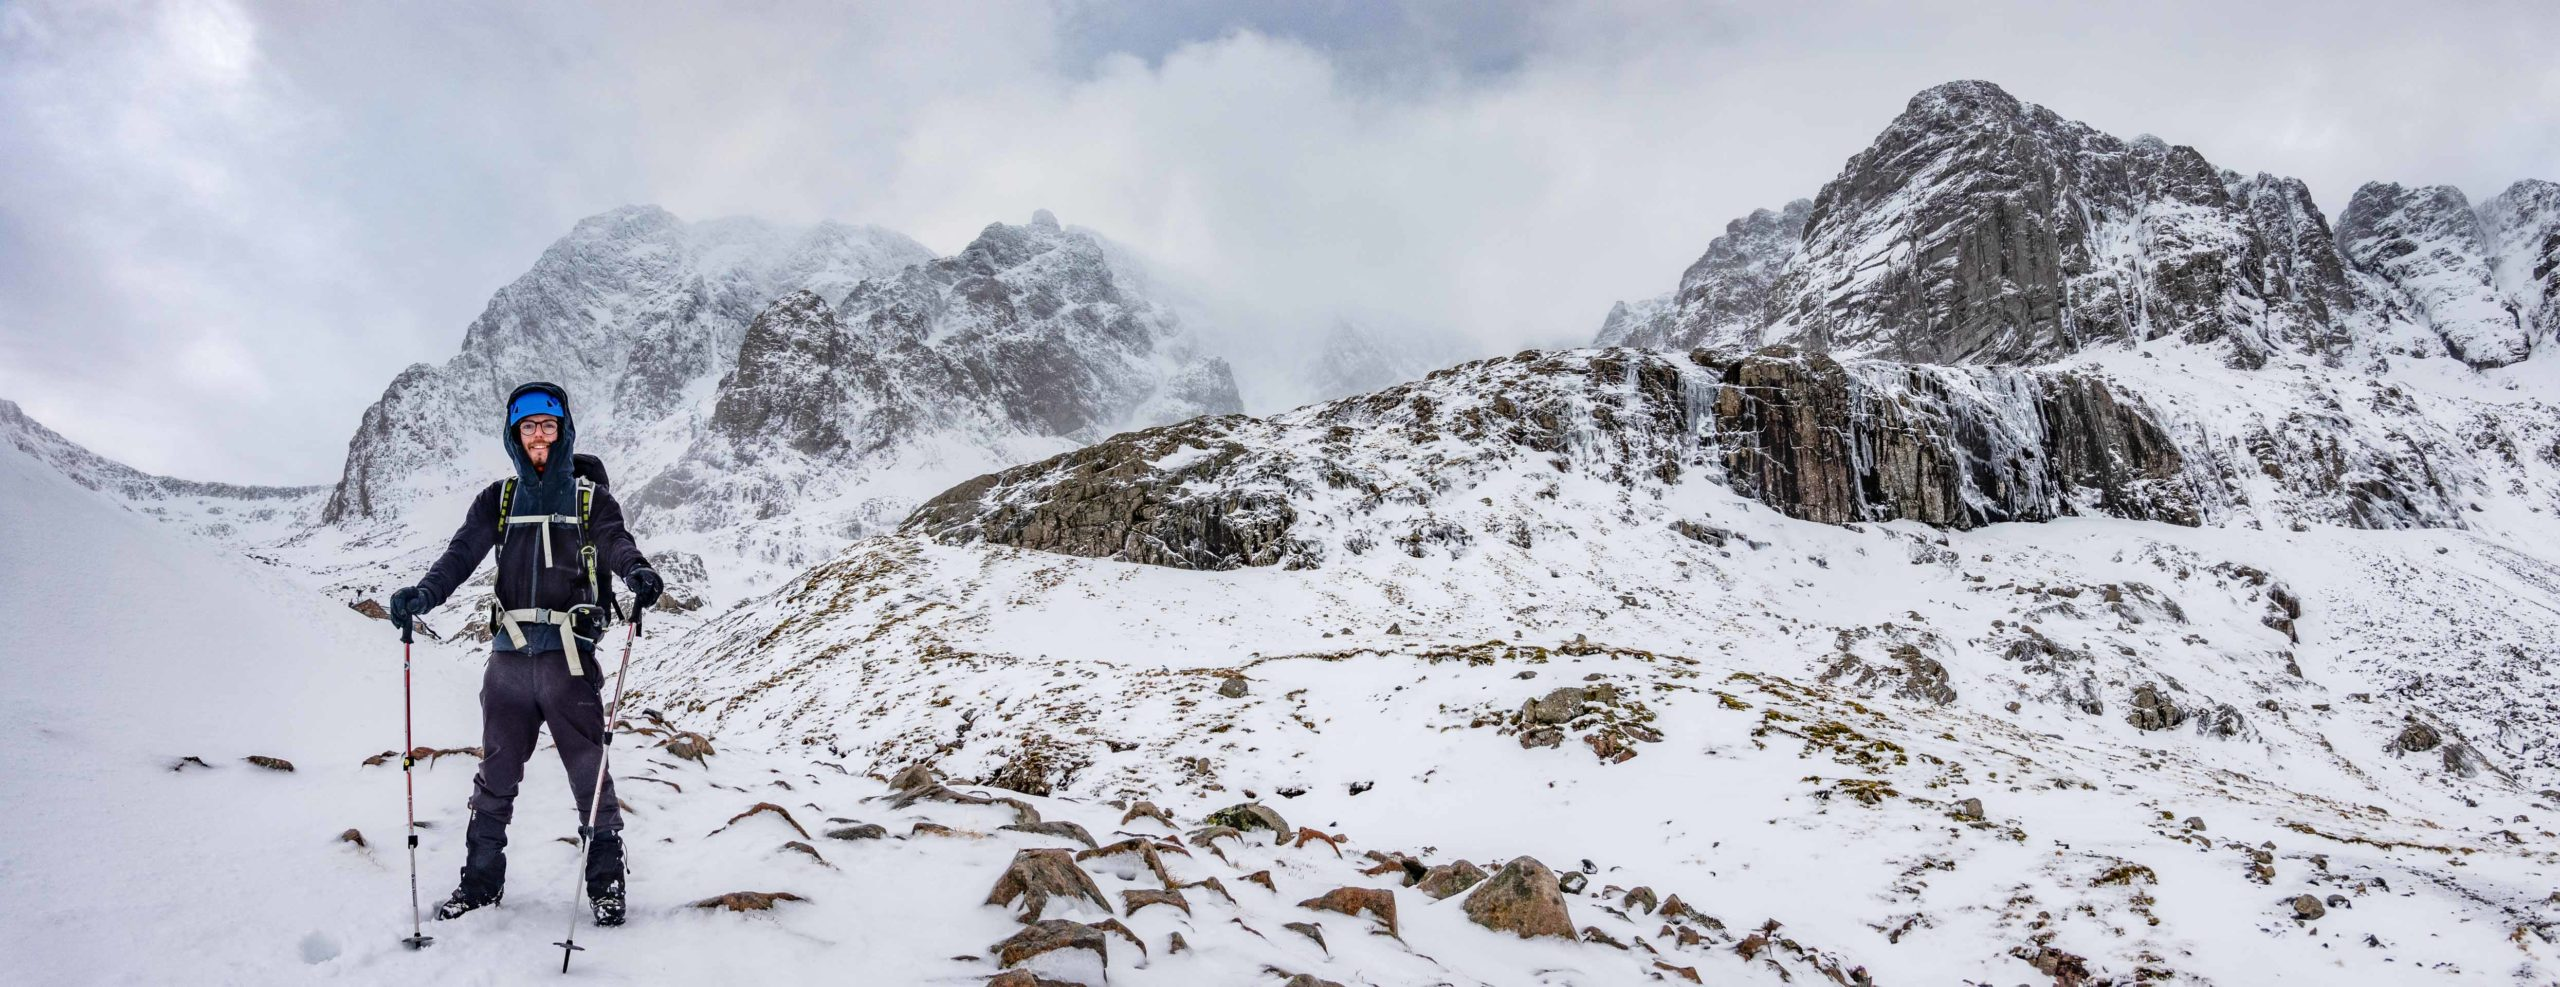 Winter Skills on Ben Nevis.Shot by one of our Ben Nevis Guides